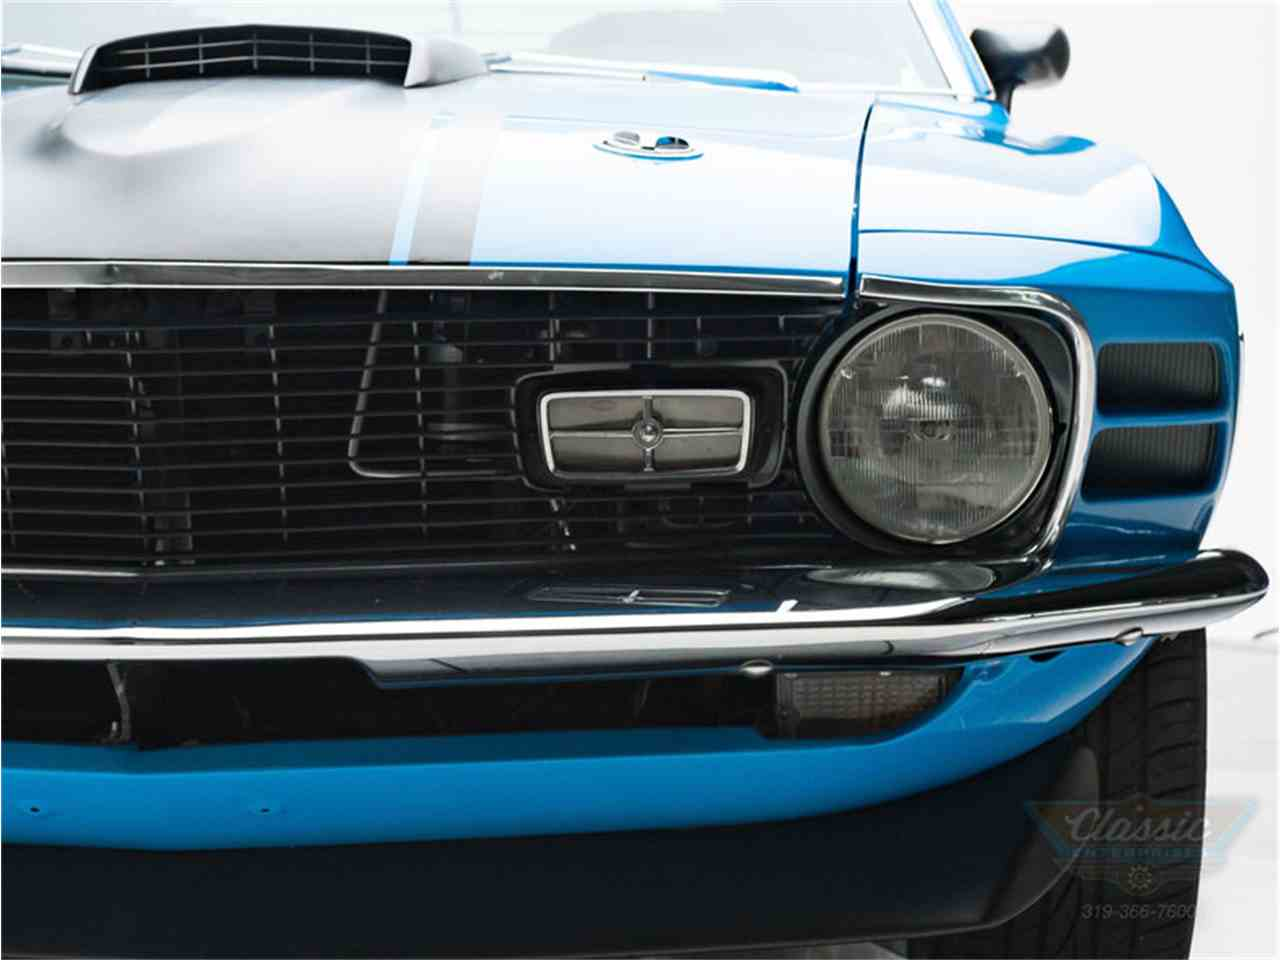 Large Picture of Classic 1970 Mustang Mach 1 Offered by Classic Enterprises - LWJF